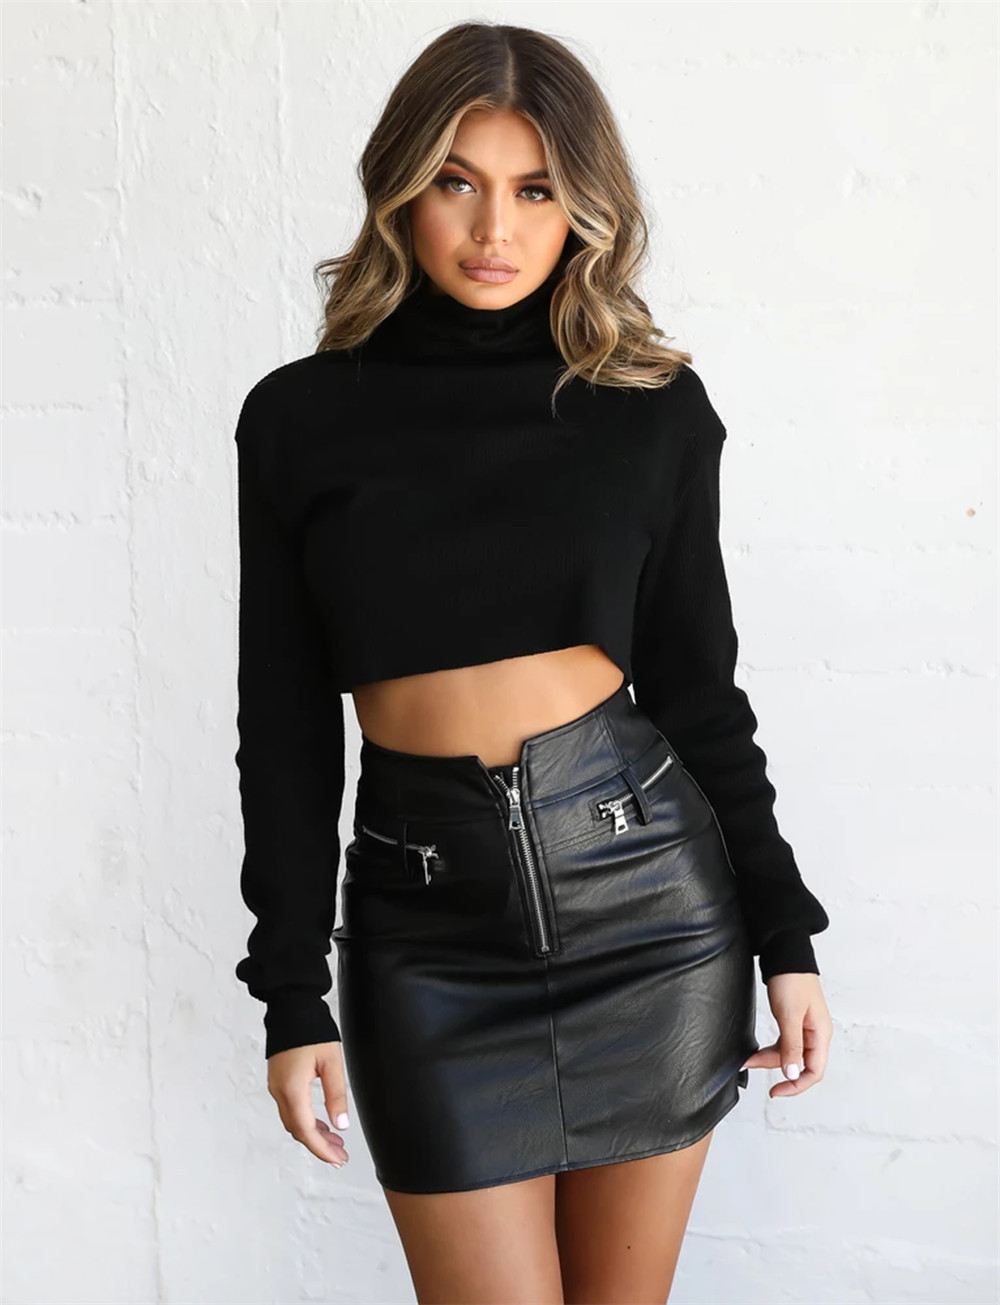 New Arrival Winter Women's Fluffy Sweater Jumper Long Sleeve Ladies Bodycon T Shirt Pullover Crop Tops High Neck Casual Tops